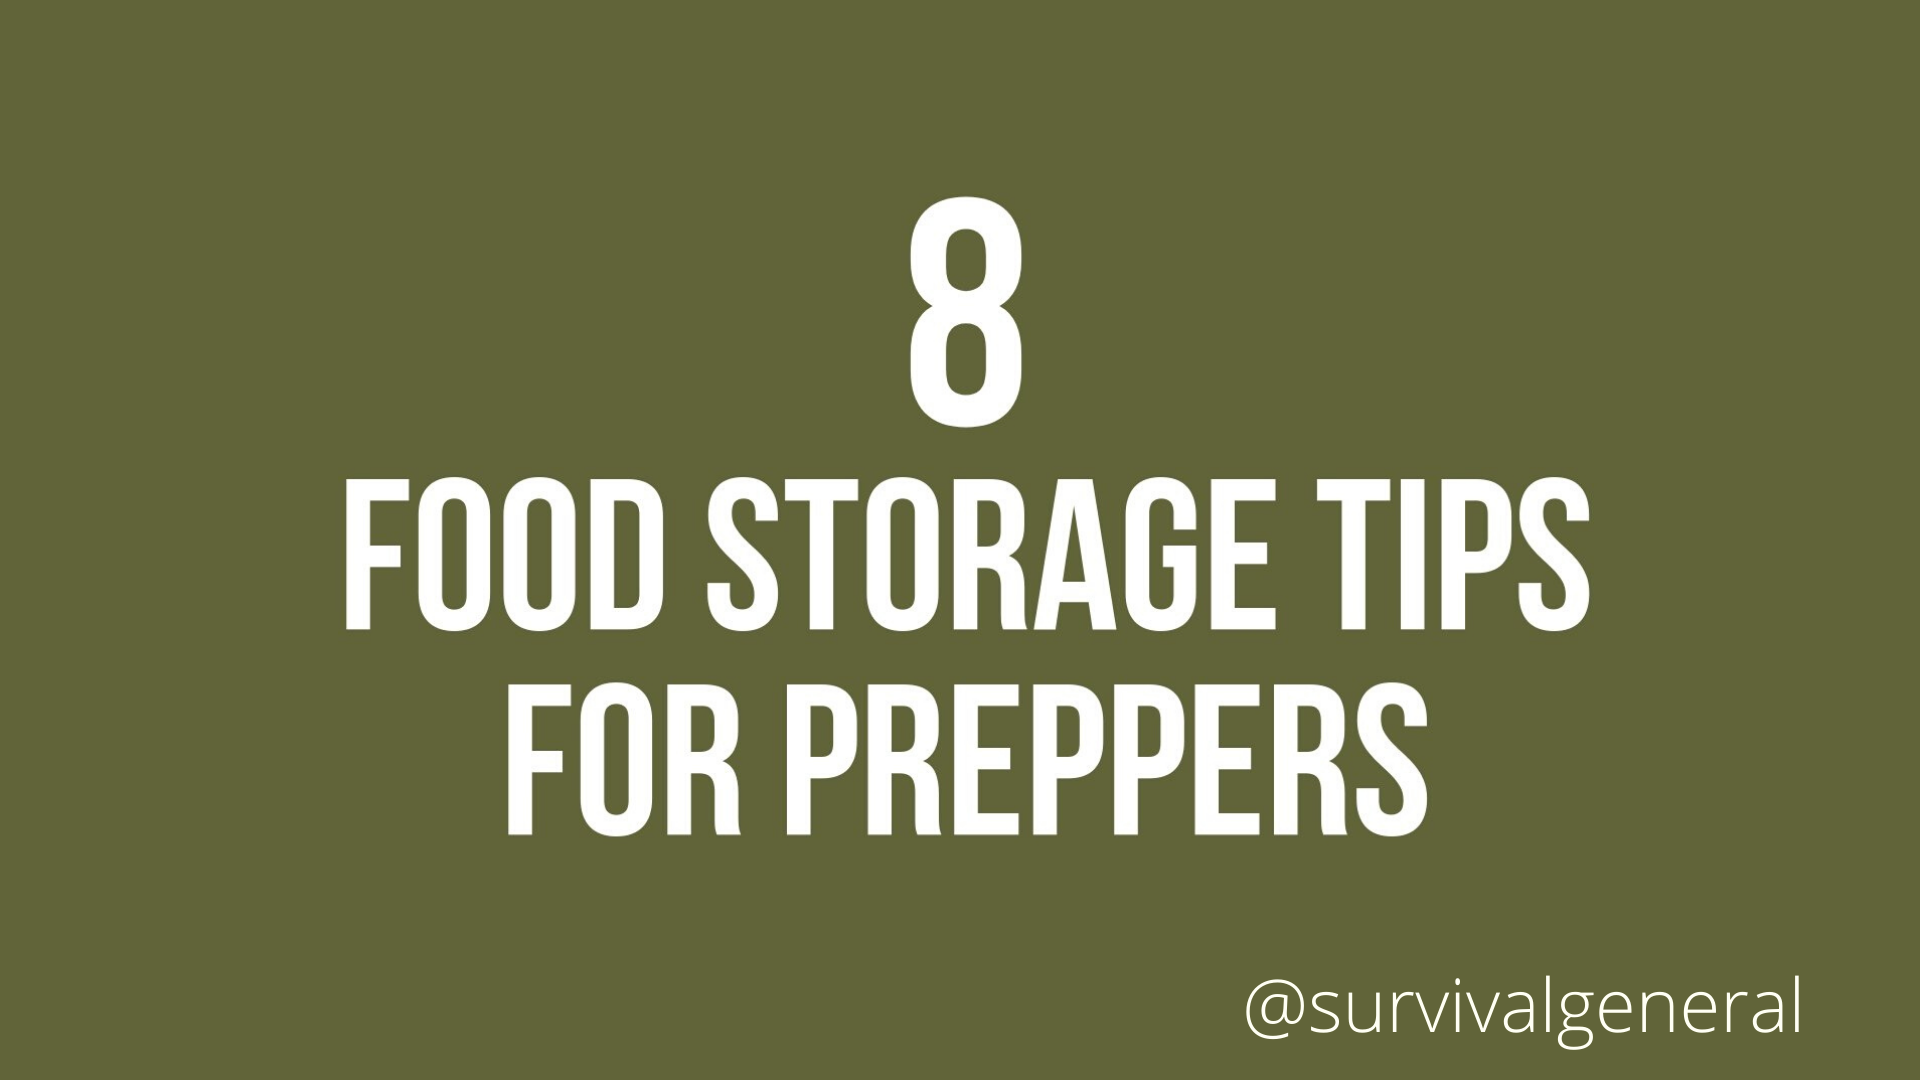 8 Food Storage Tips for Preppers